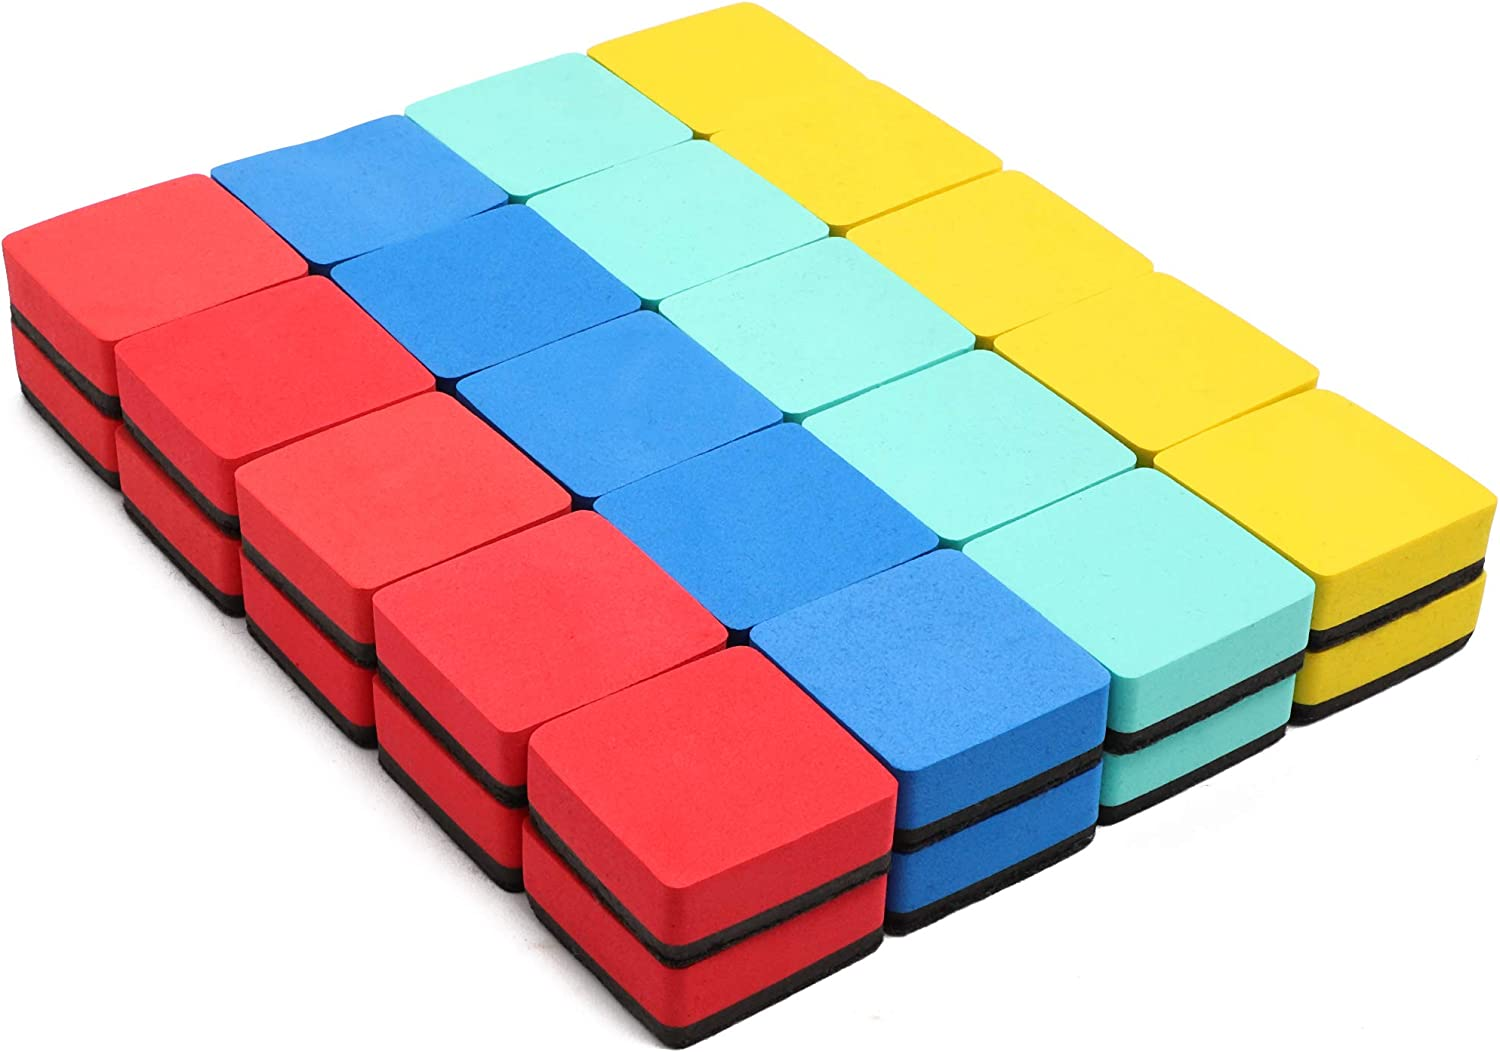 2 x 2 in, Felt and Foam, 40 Pack Bright Creations Dry-Erase Erasers